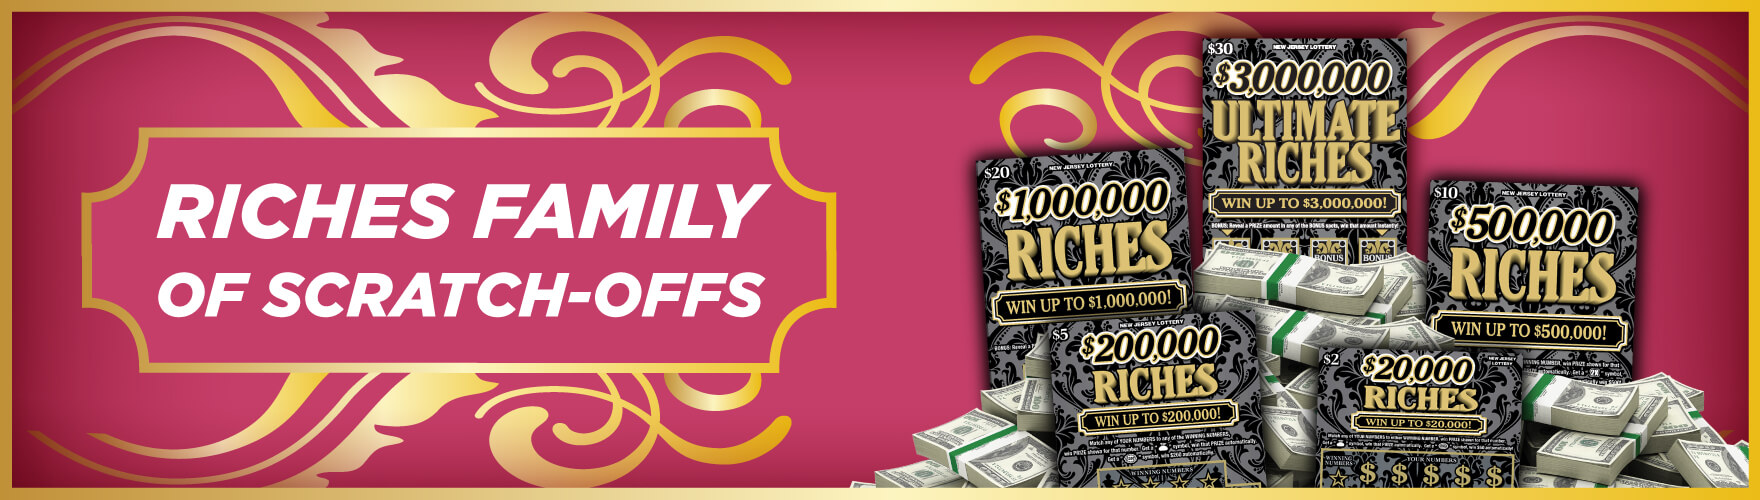 Riches Family Of Scratch-Offs